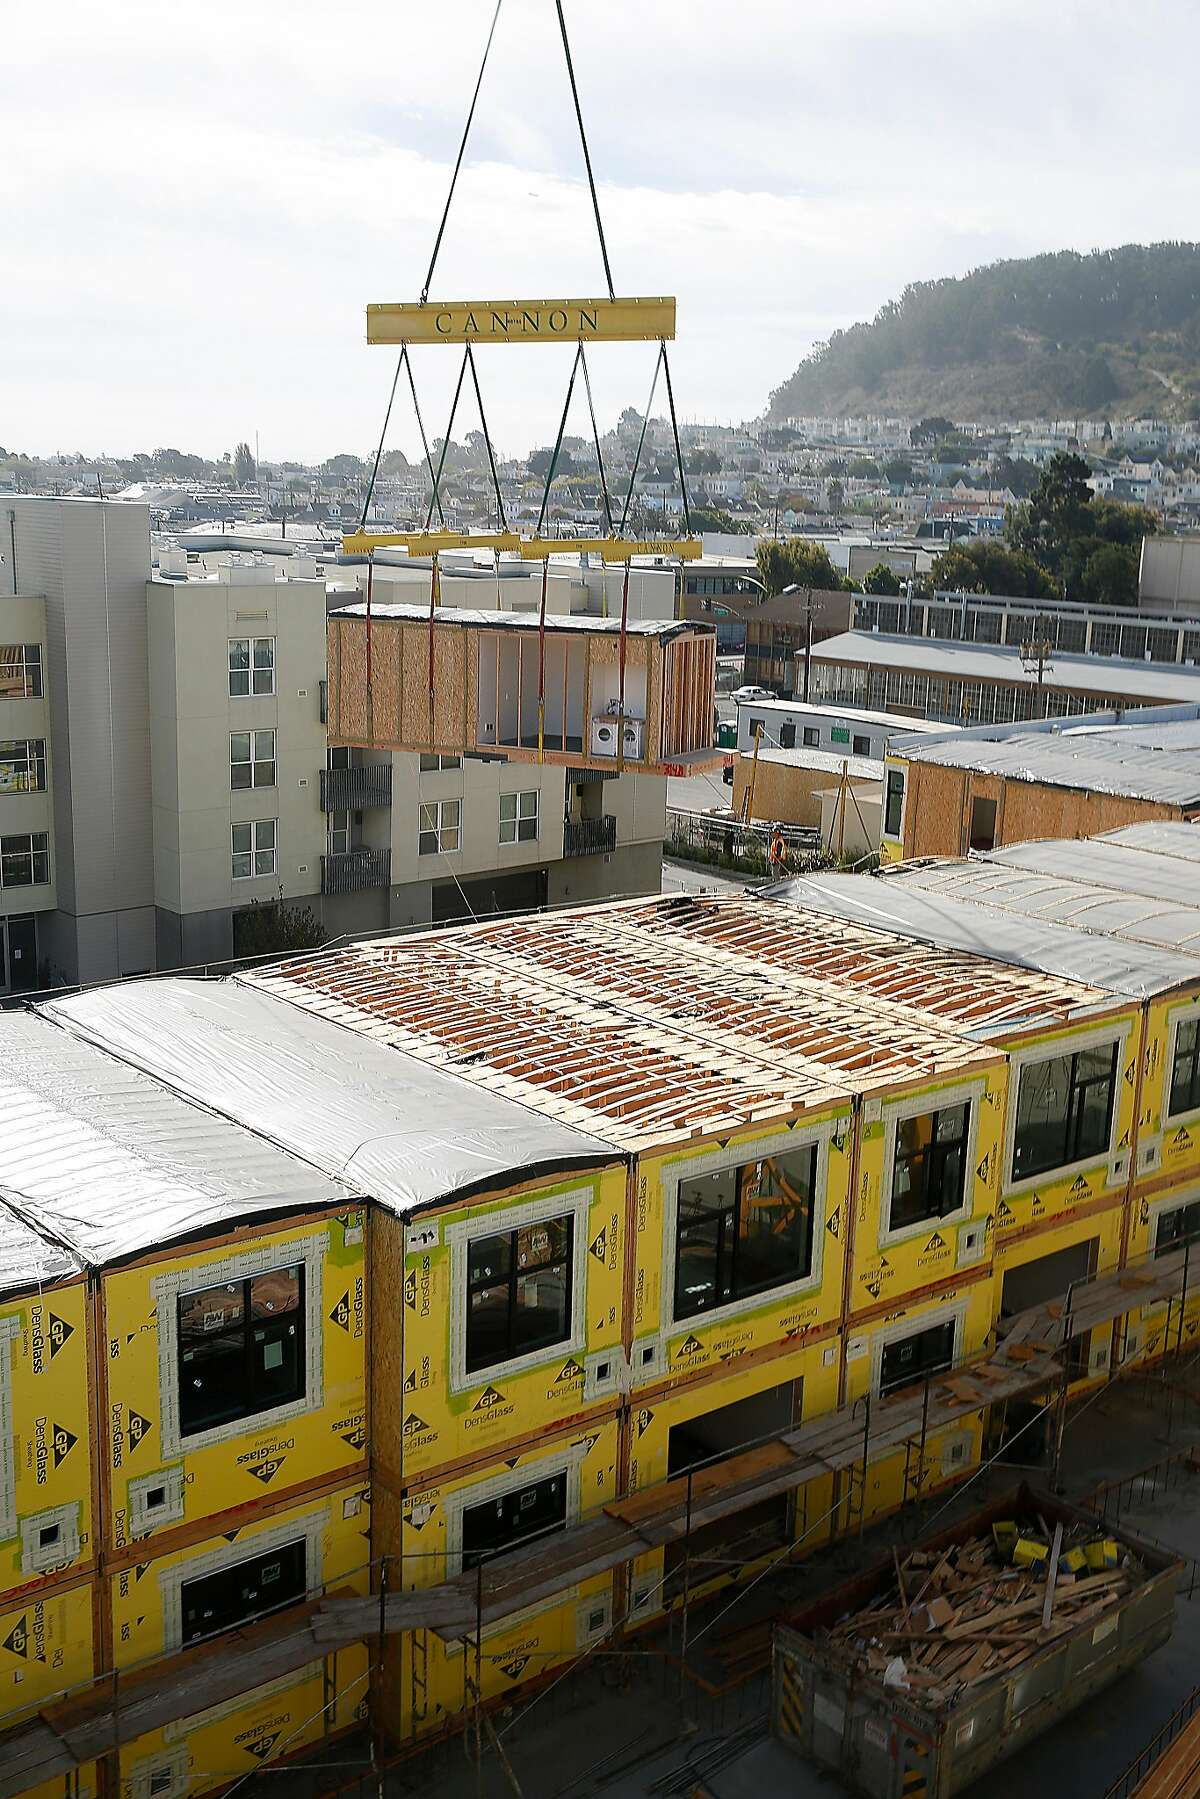 A 136-unit rental modular housing project takes place in the Bayview in San Francisco, Calif., on Monday, September 28, 2015. Construction for placing the modular units is on it's sixth day where the second floor of units is already three quarters placed.